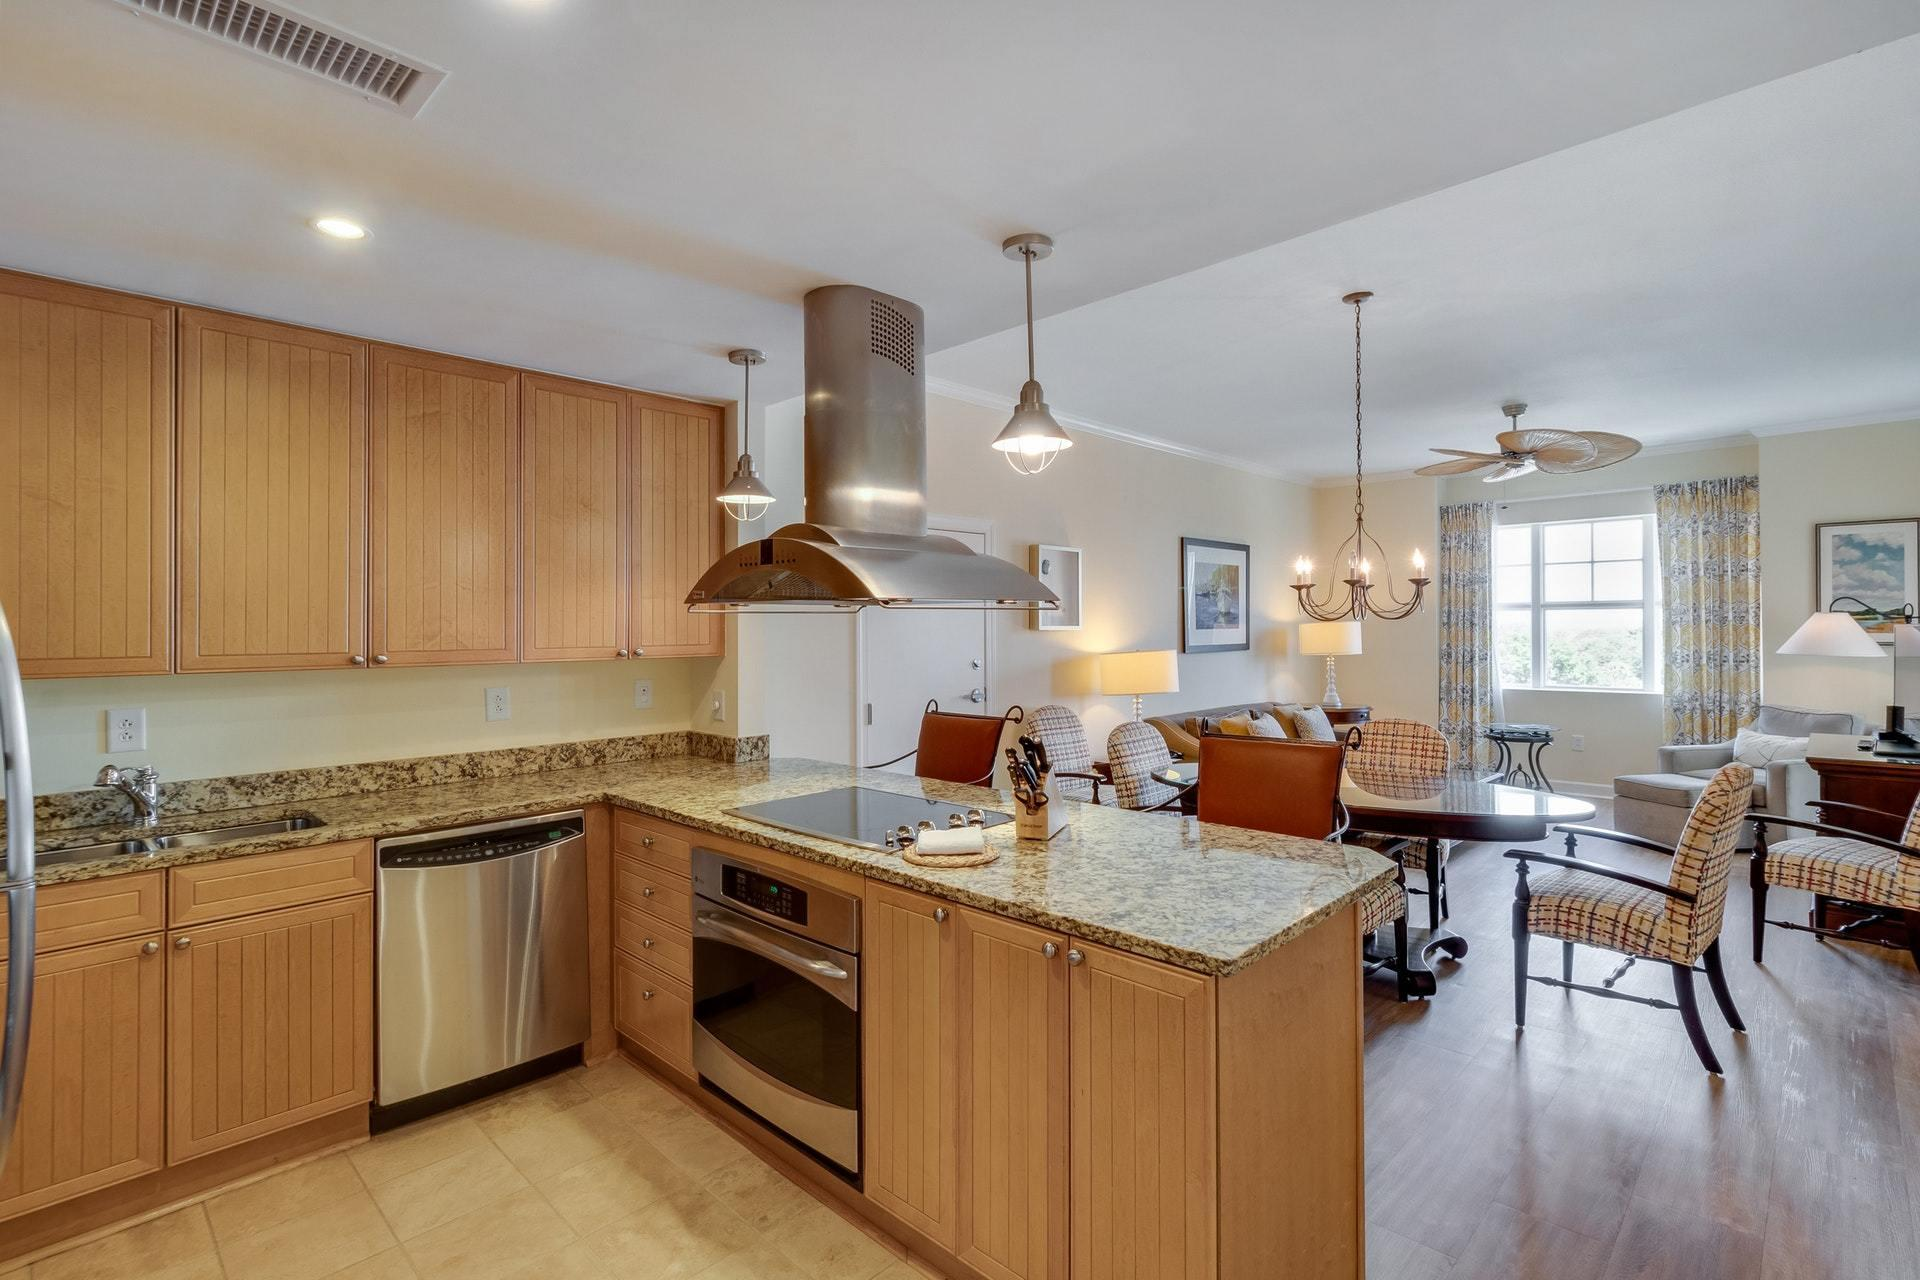 Wild Dunes Homes For Sale - 505/507 Village At Wild Dunes, Isle of Palms, SC - 24